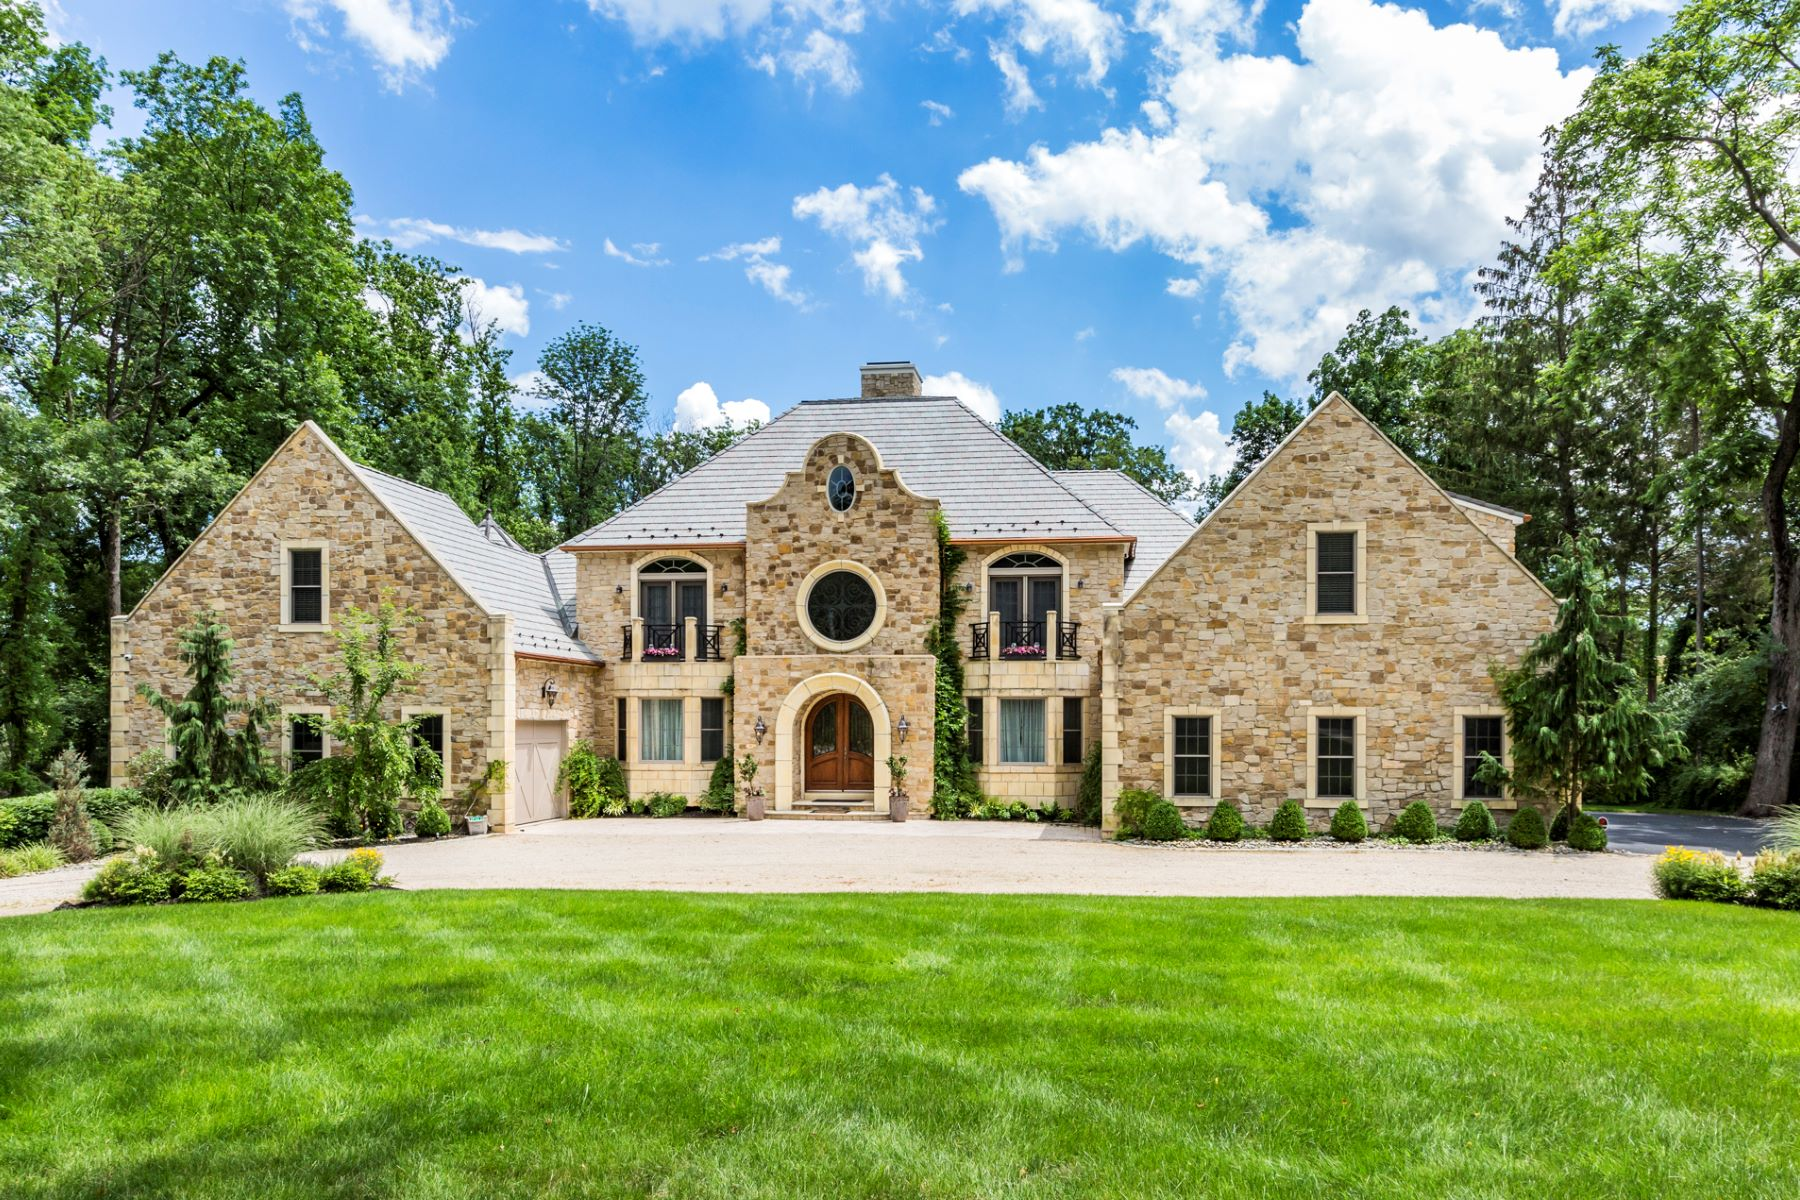 Single Family Home for Sale at Majestic Custom Home, Complete with Every Luxury 218 Drakes Corner Road, Princeton, New Jersey 08540 United StatesMunicipality: Princeton